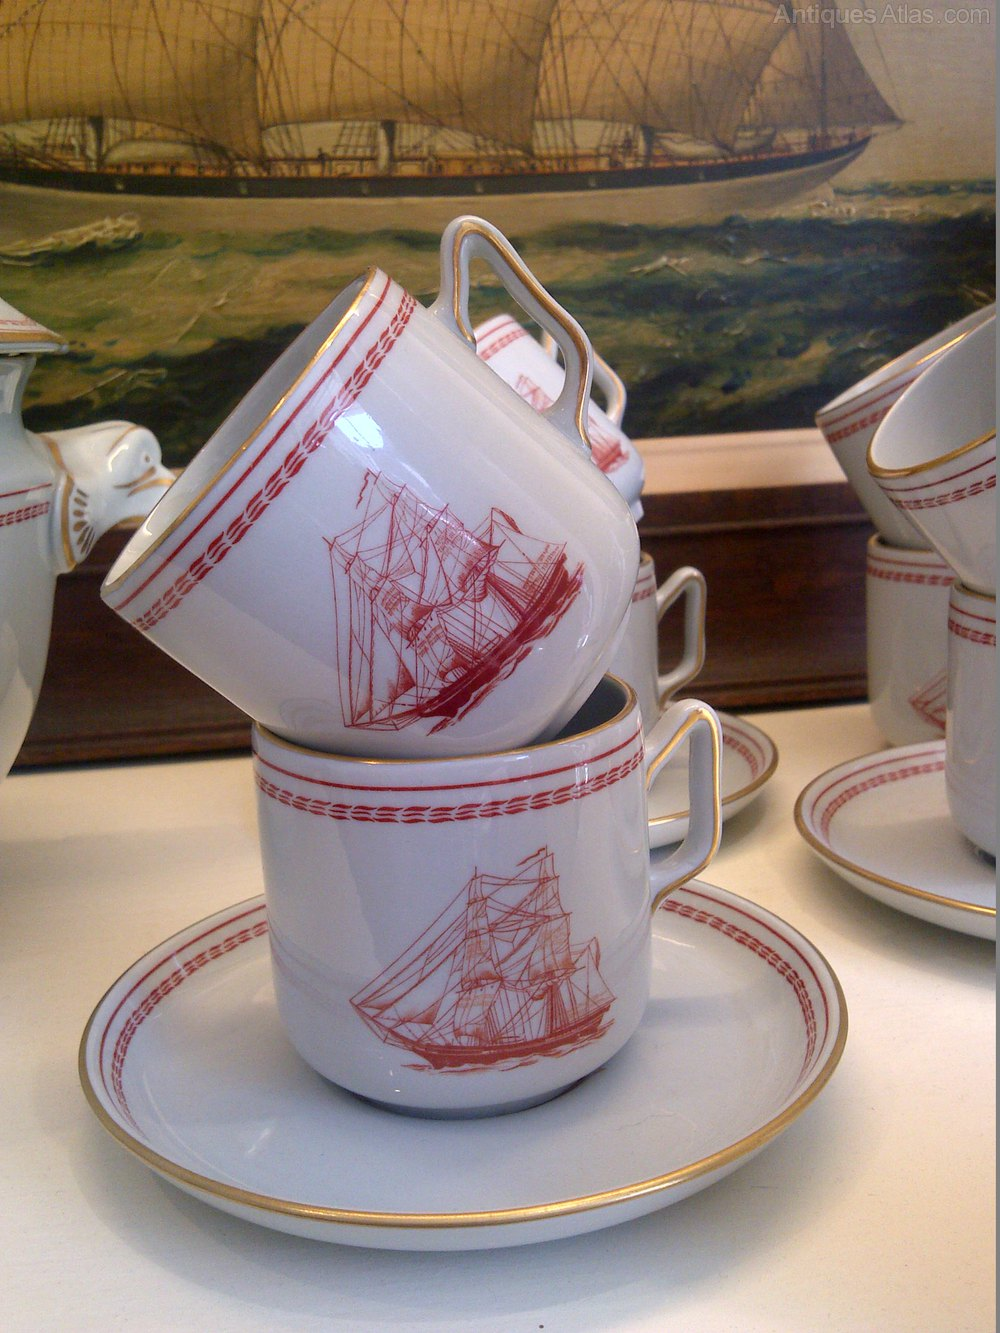 Antiques Atlas - Spode \'Trade Winds\' (red) Dinner Service